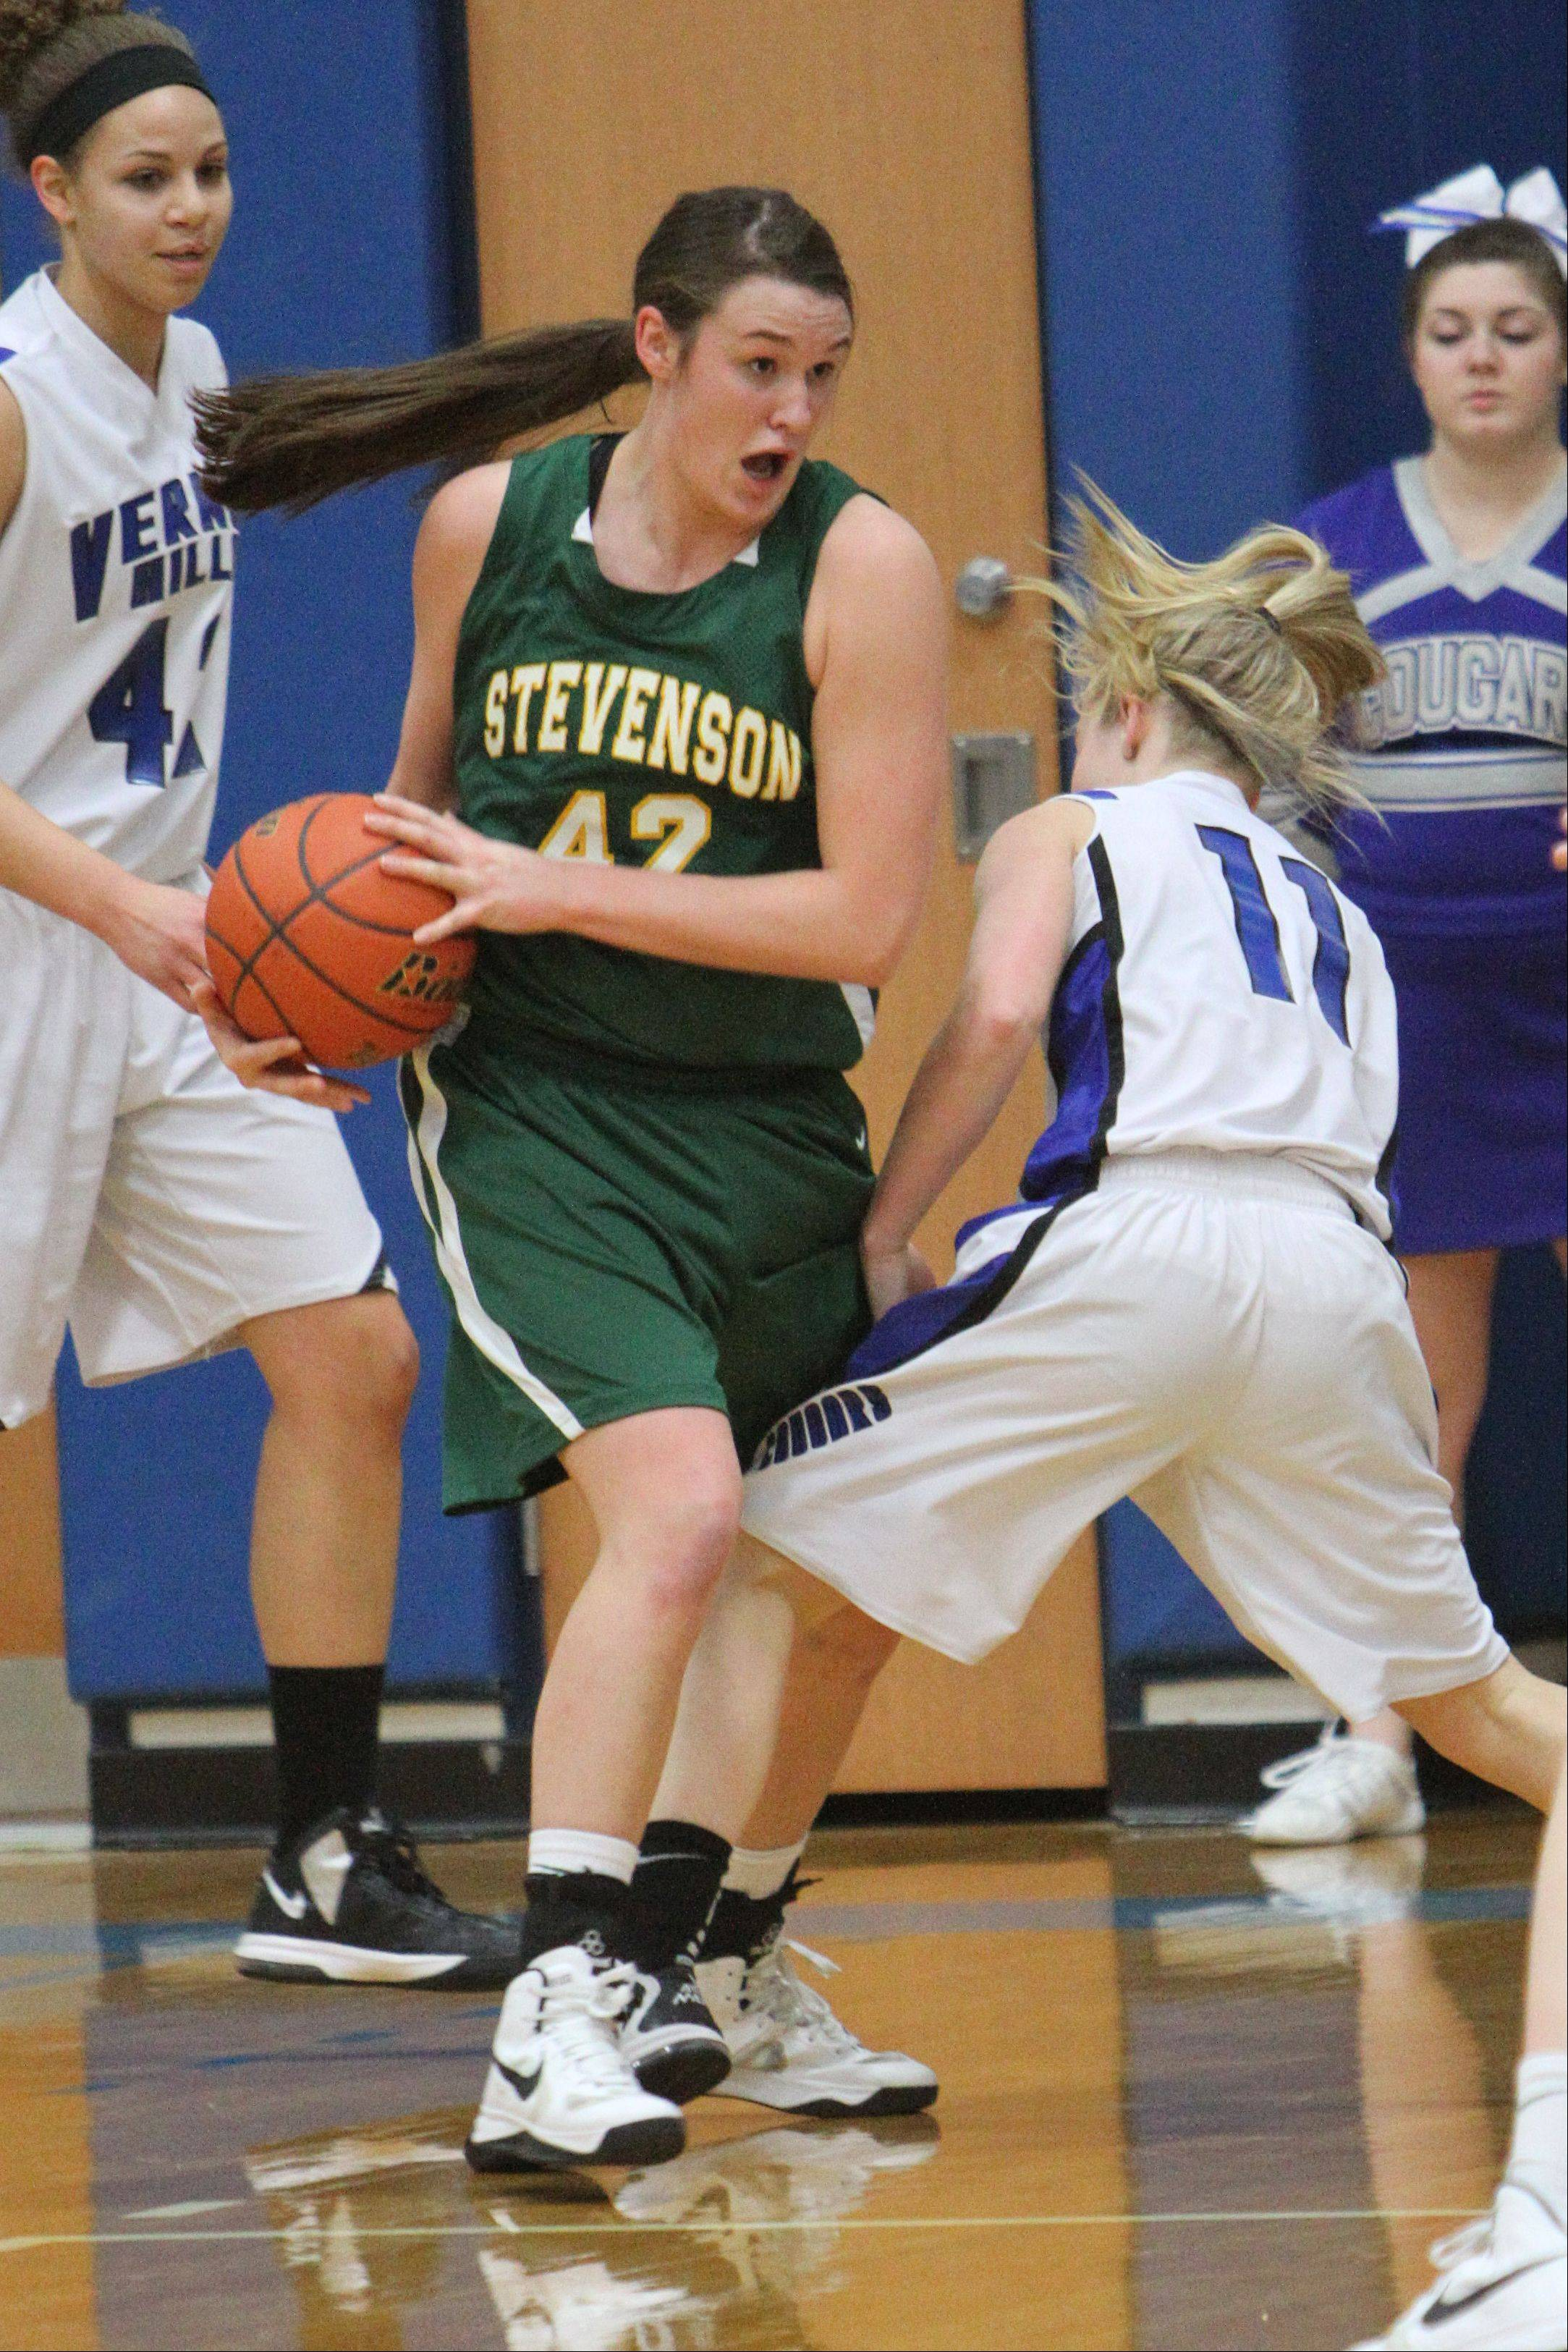 Images from the Stevenson at Vernon Hills girls basketball game on Tuesday, Jan. 8 in Vernon Hills.